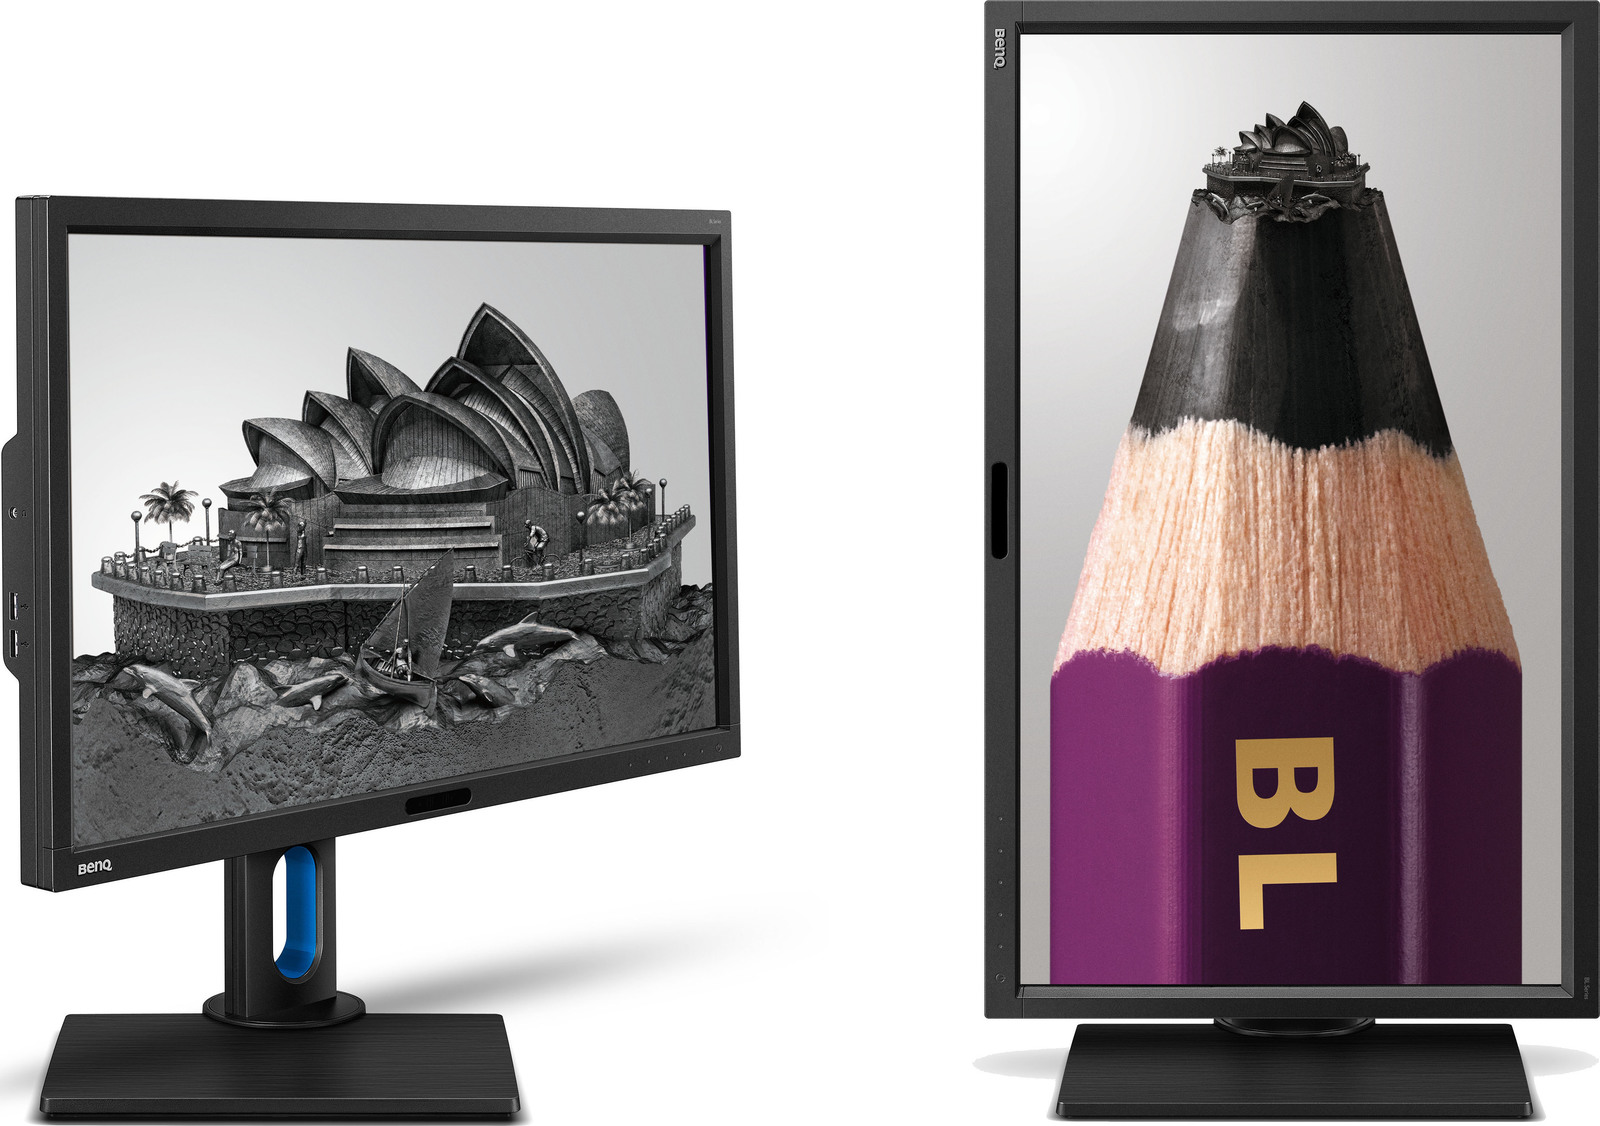 BenQ_BL2711U_Monitor_4K_review_Unboxing_Buhnici